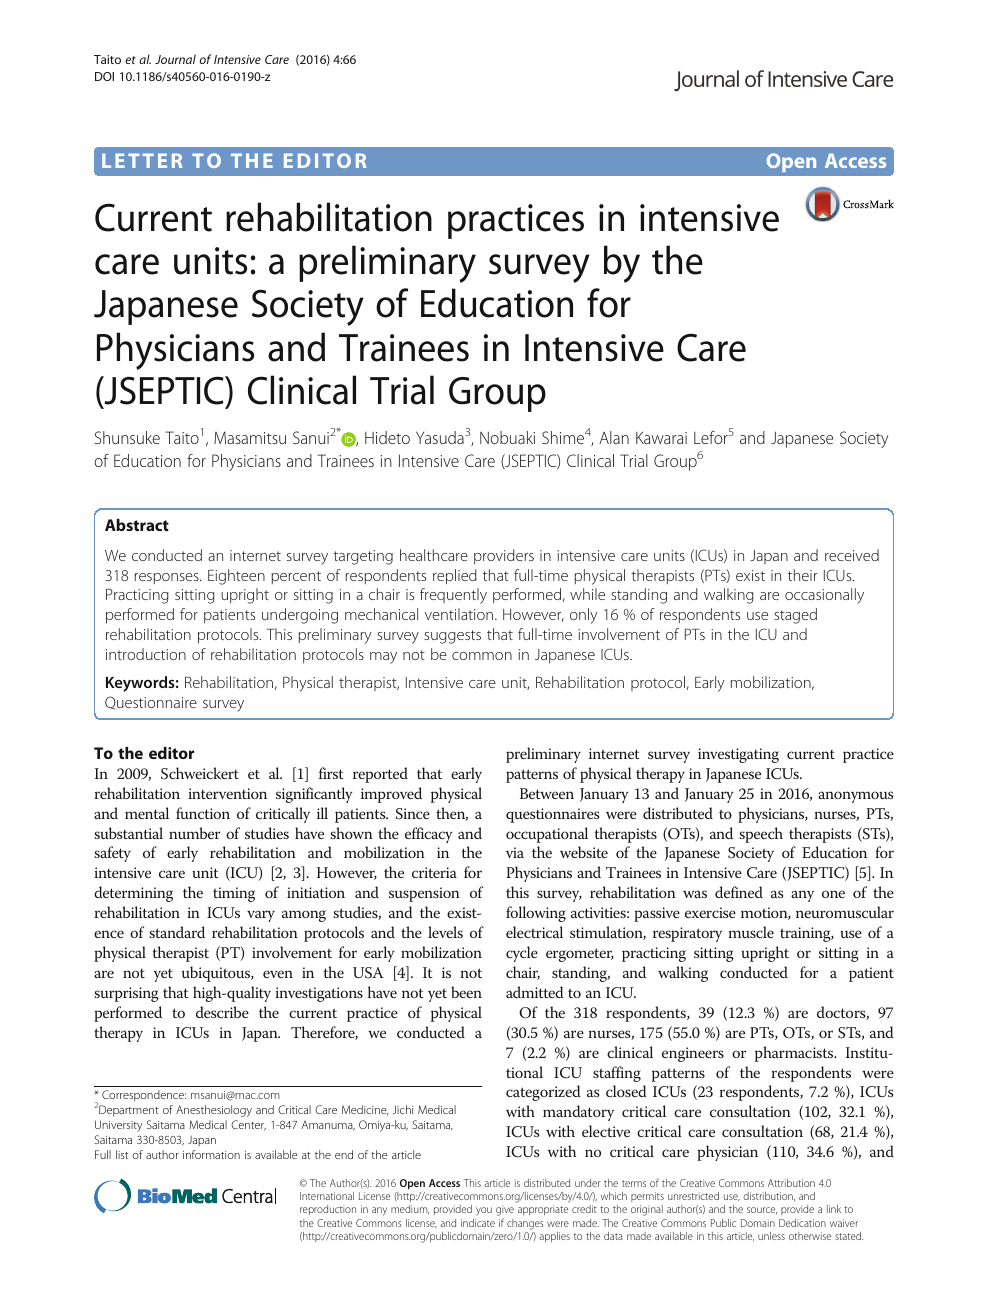 Current rehabilitation practices in intensive care units: a